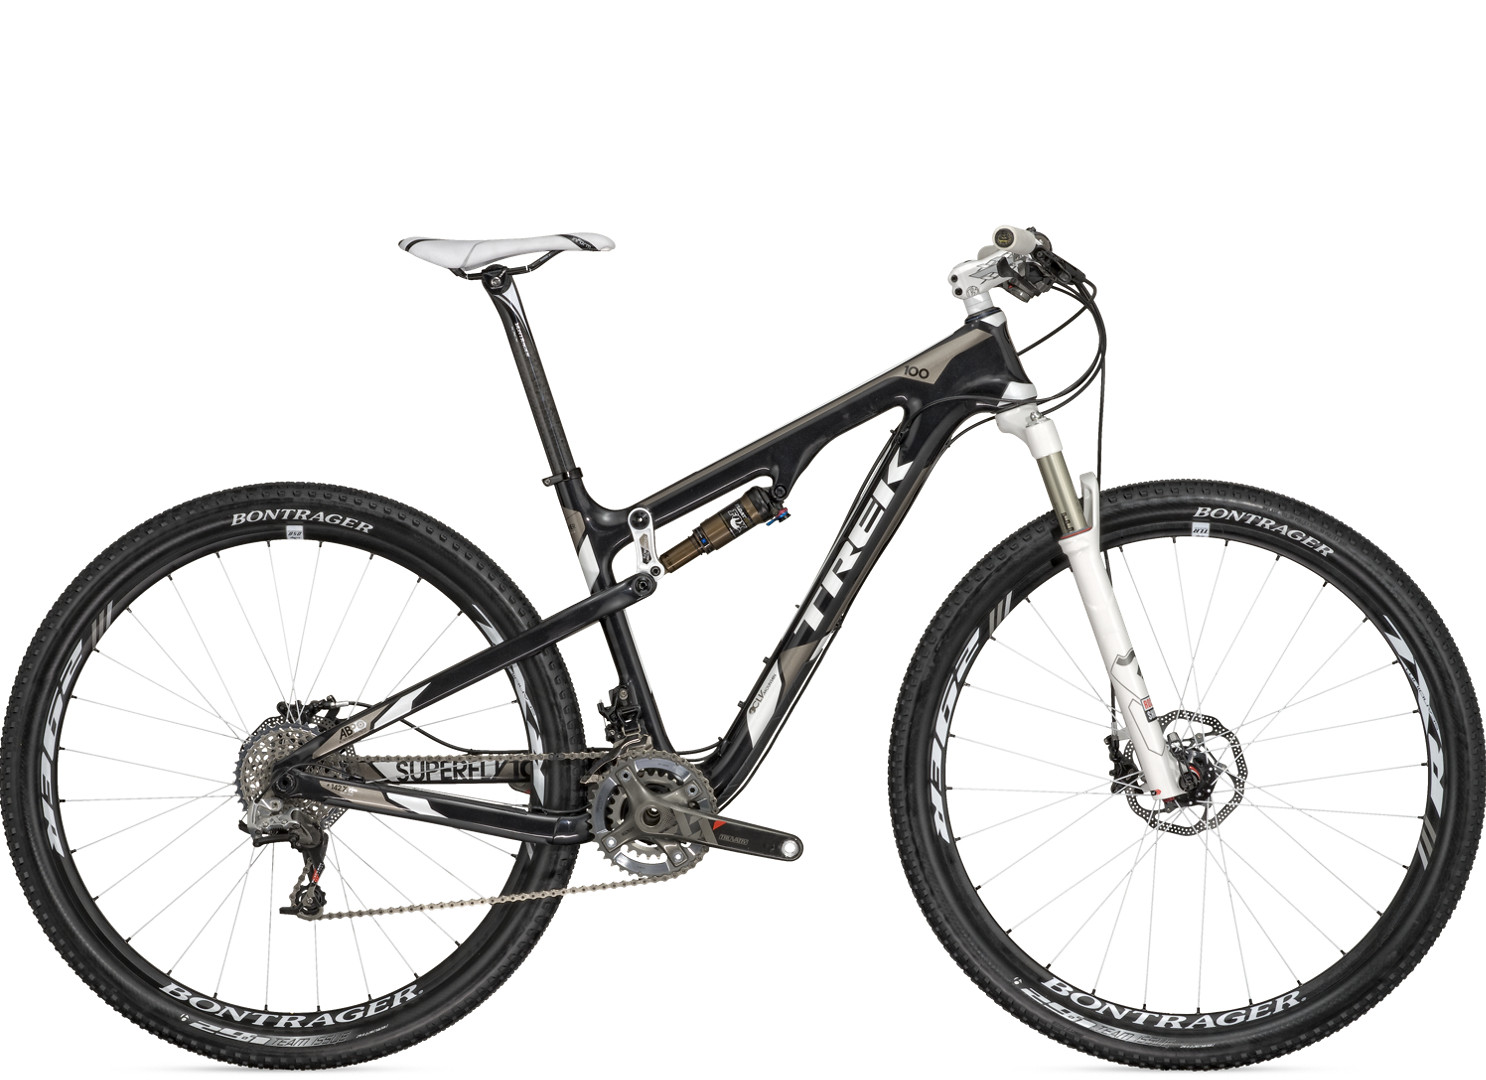 2012 Trek Superfly 100 Pro Bike Reviews Comparisons